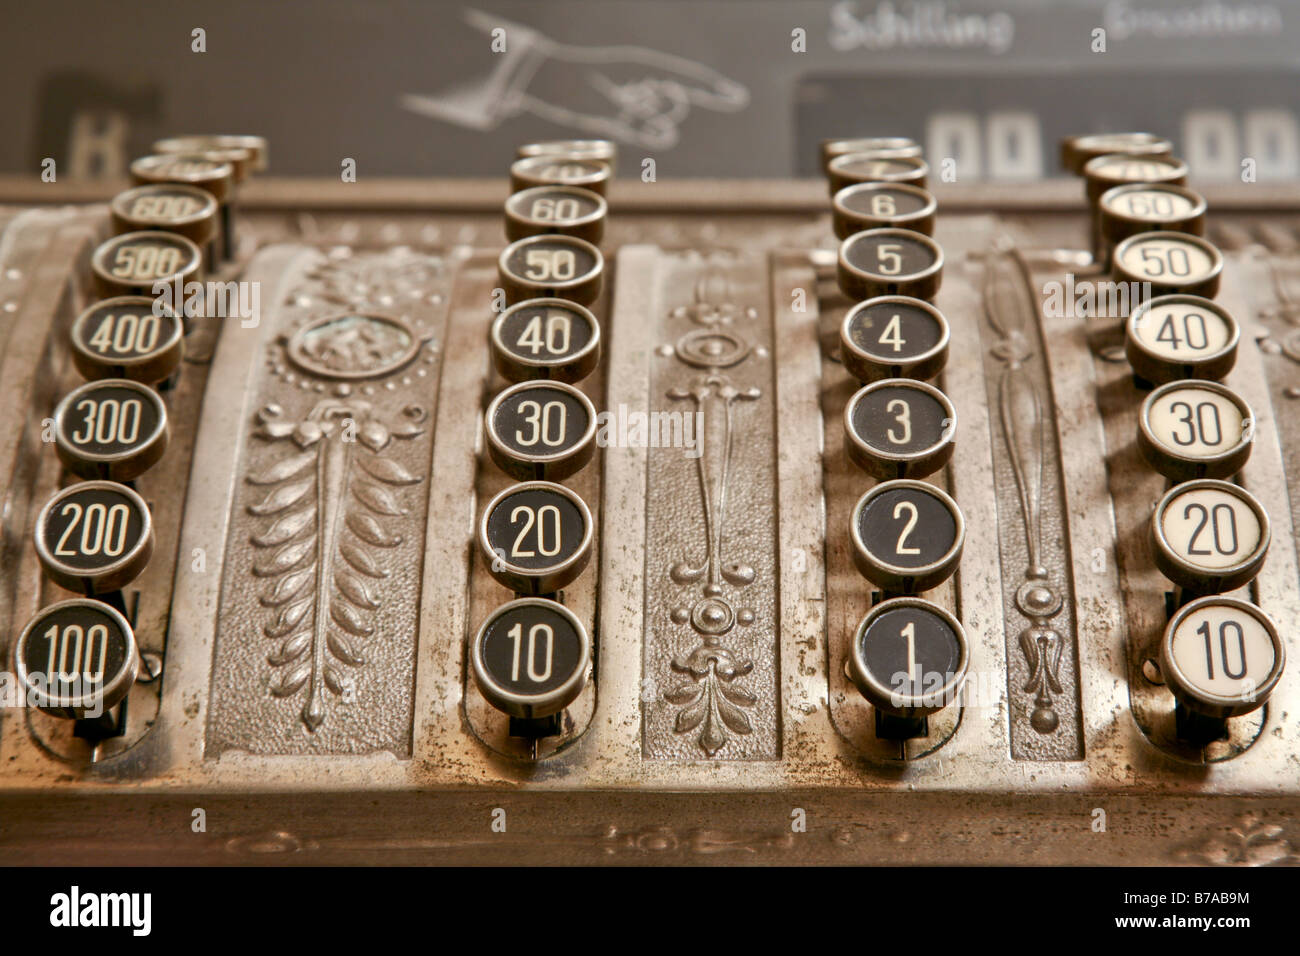 Old cash register with hundreds, tens, ones and tenths keys - Stock Image